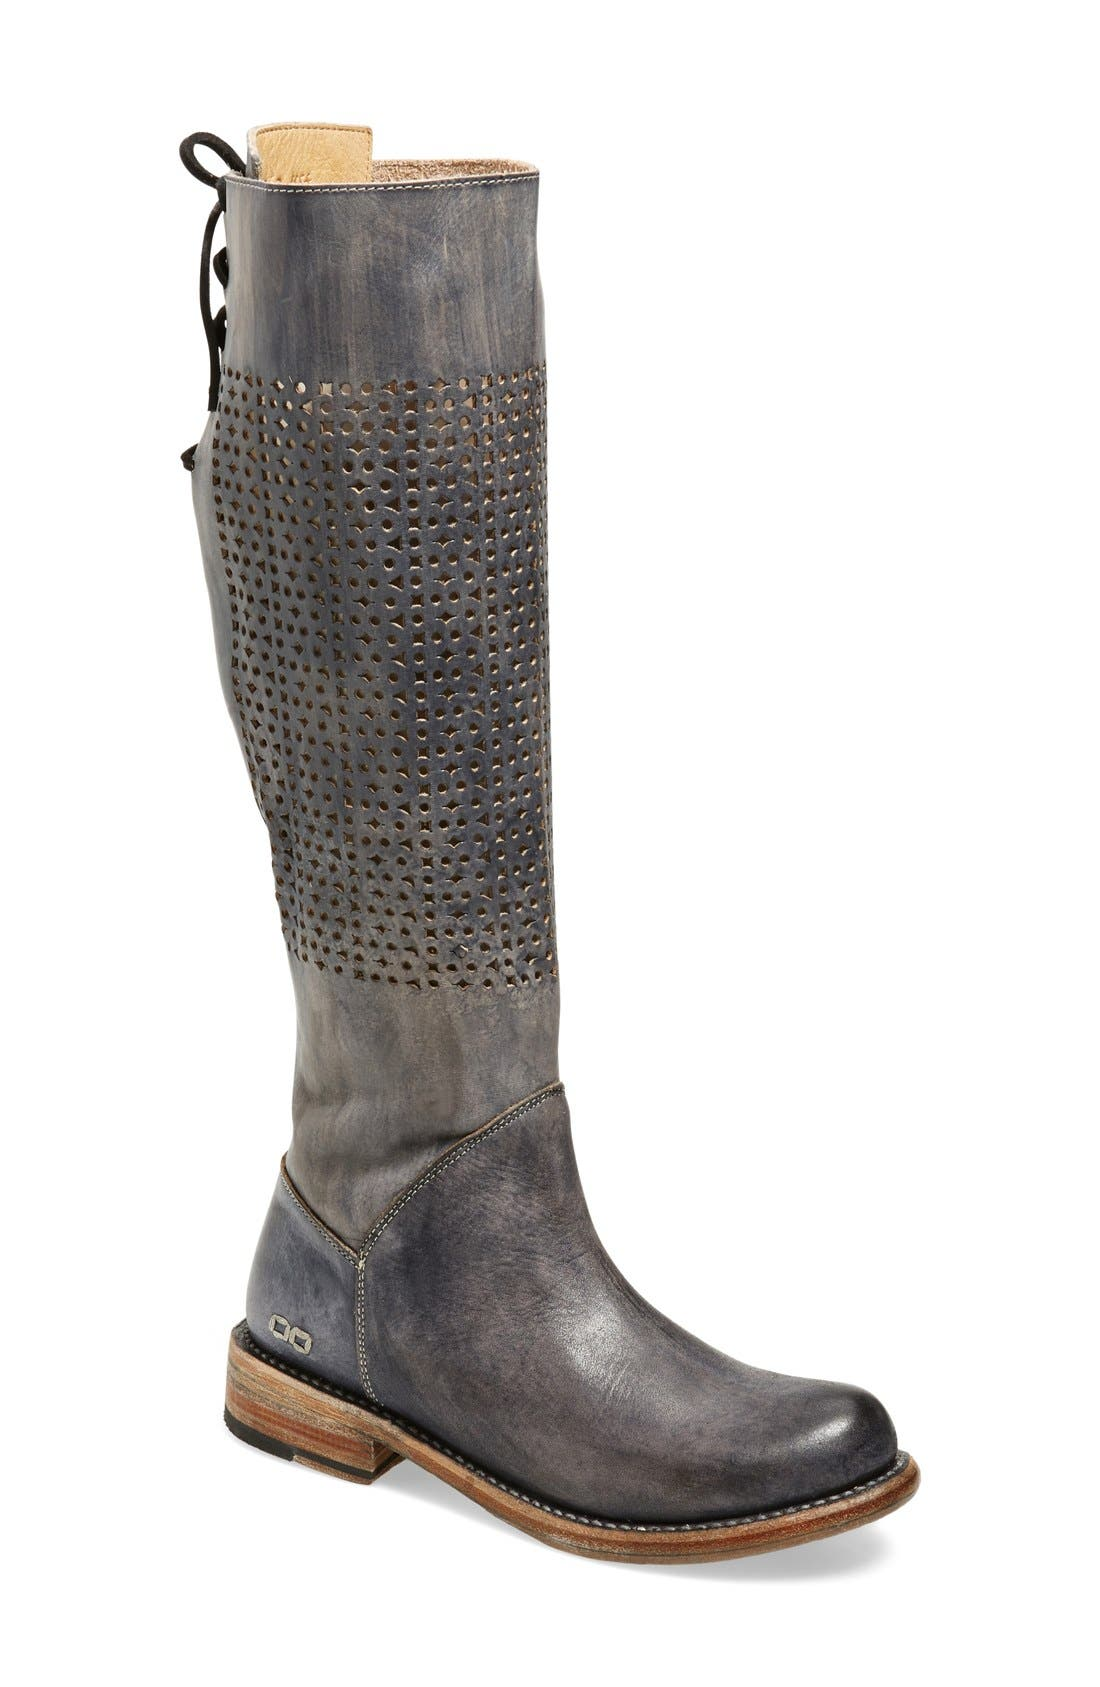 bed stu cambridge knee high leather boot nordstrom